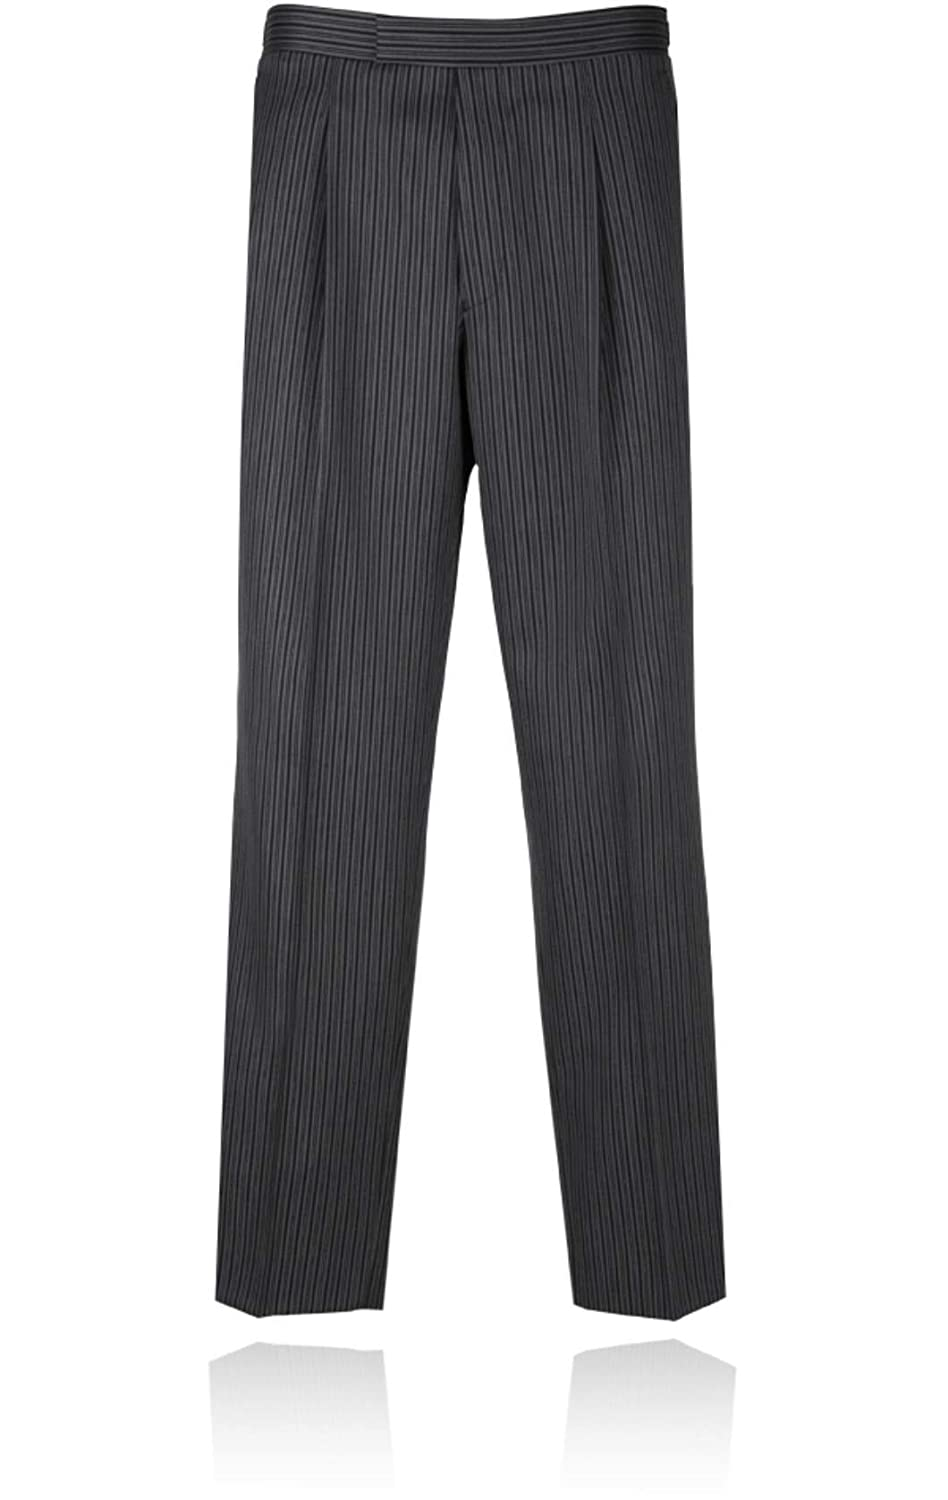 1920s Mens Formal Wear: Tuxedos and Dinner Jackets Mens Black & Grey Striped Morning Suit Trousers £50.00 AT vintagedancer.com